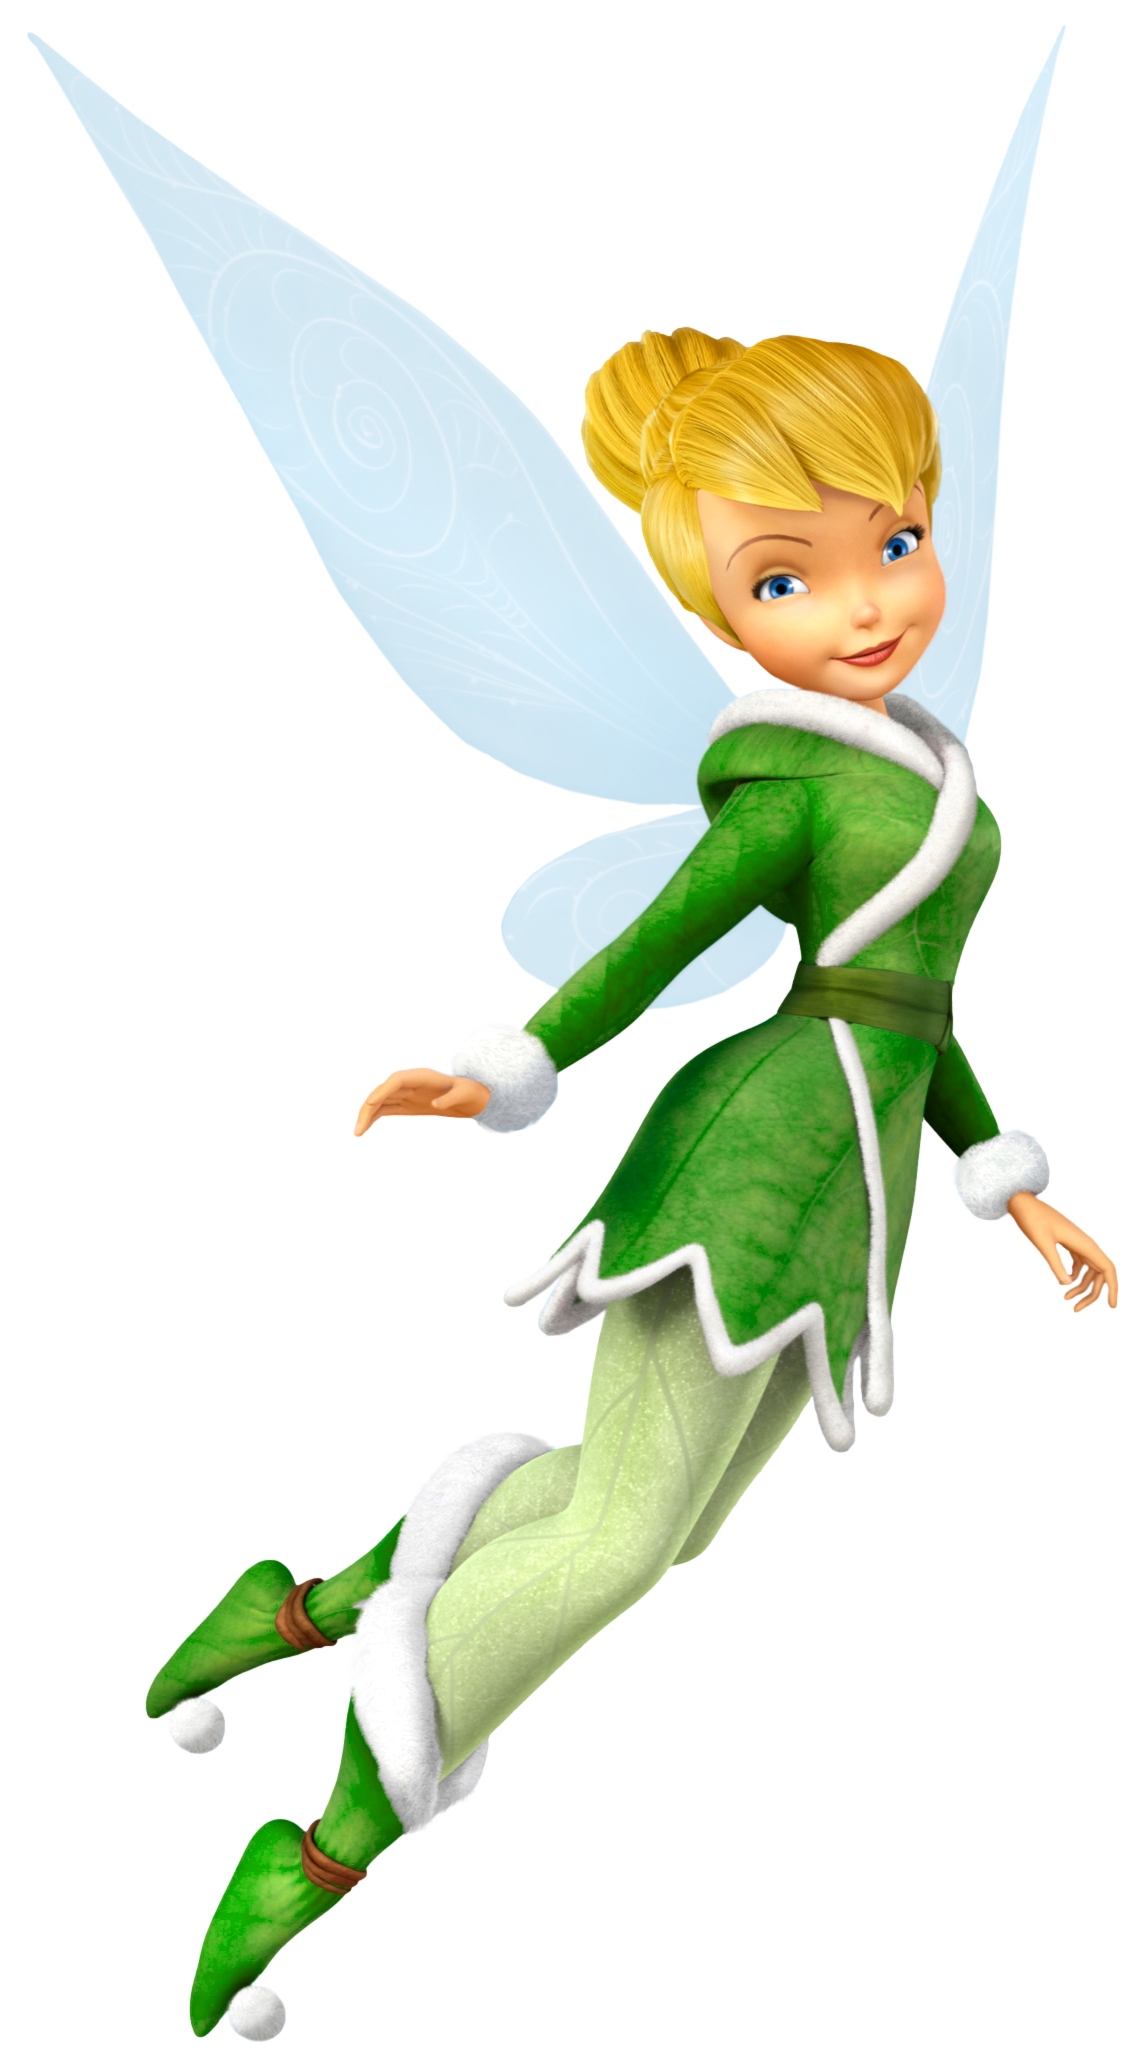 Tinkerbell Png Pesquisa Google Tinkerbell Pictures Tinkerbell Wallpaper Tinkerbell And Friends